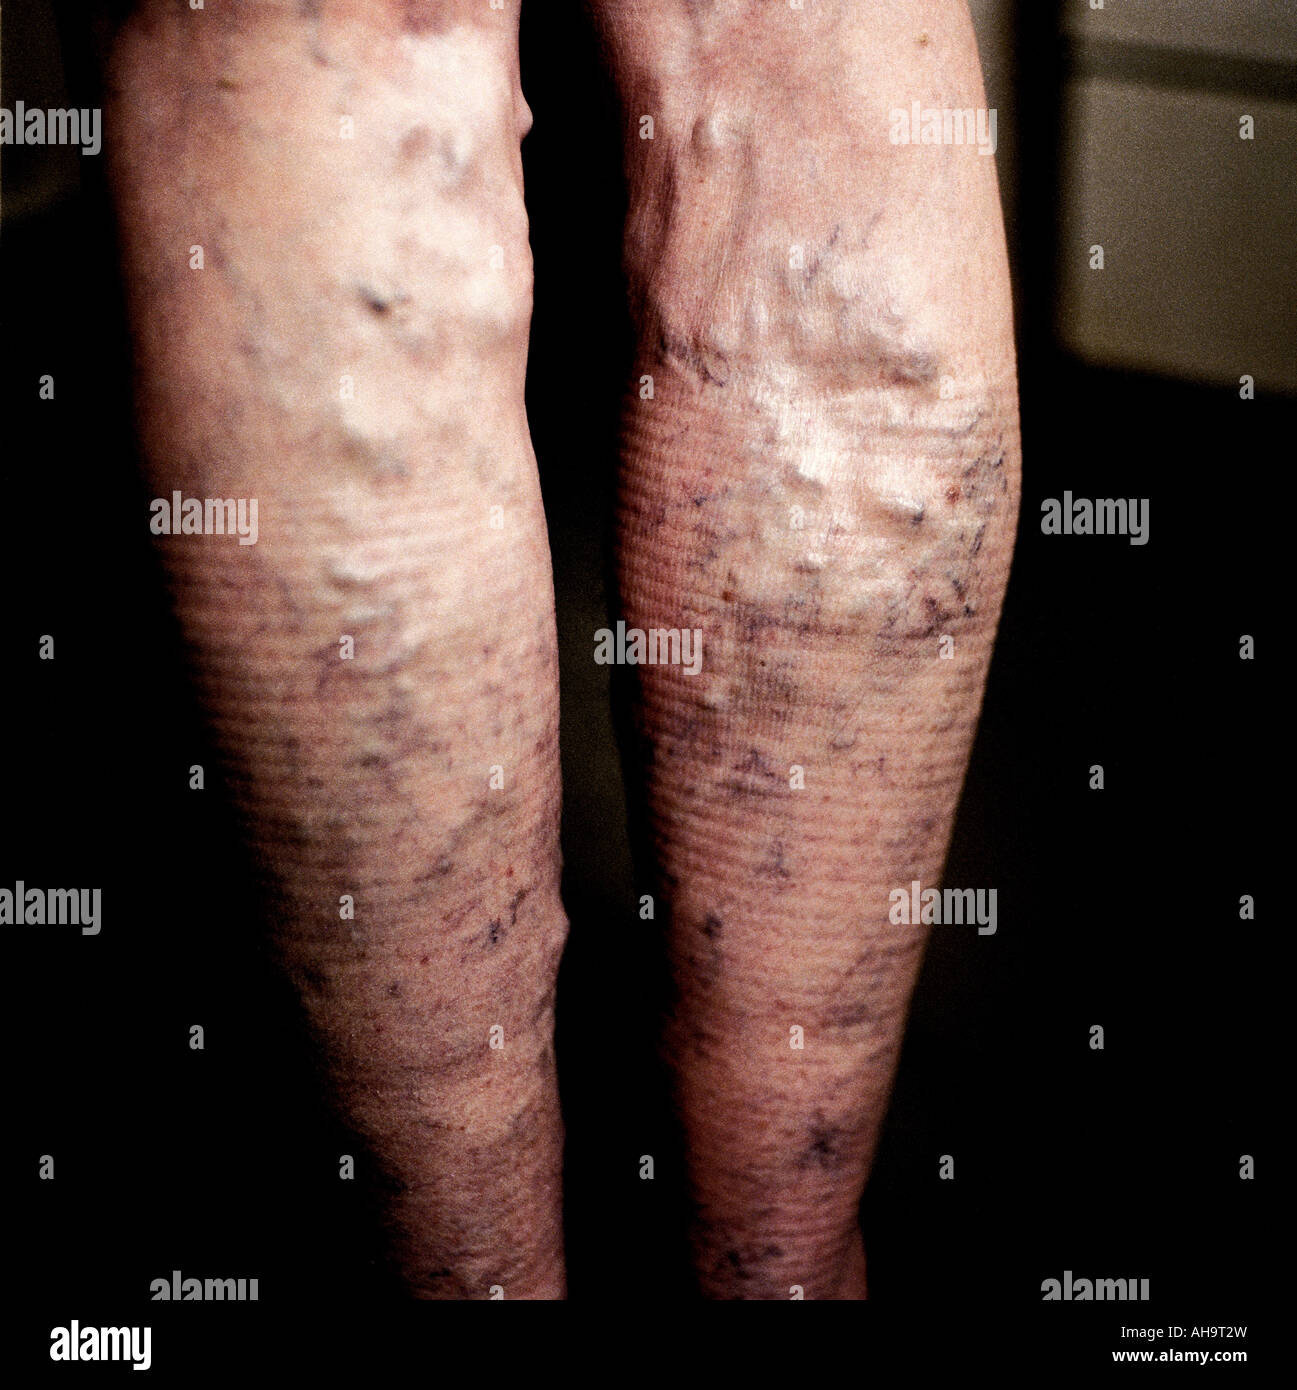 Legs with Varicose veins - Stock Image